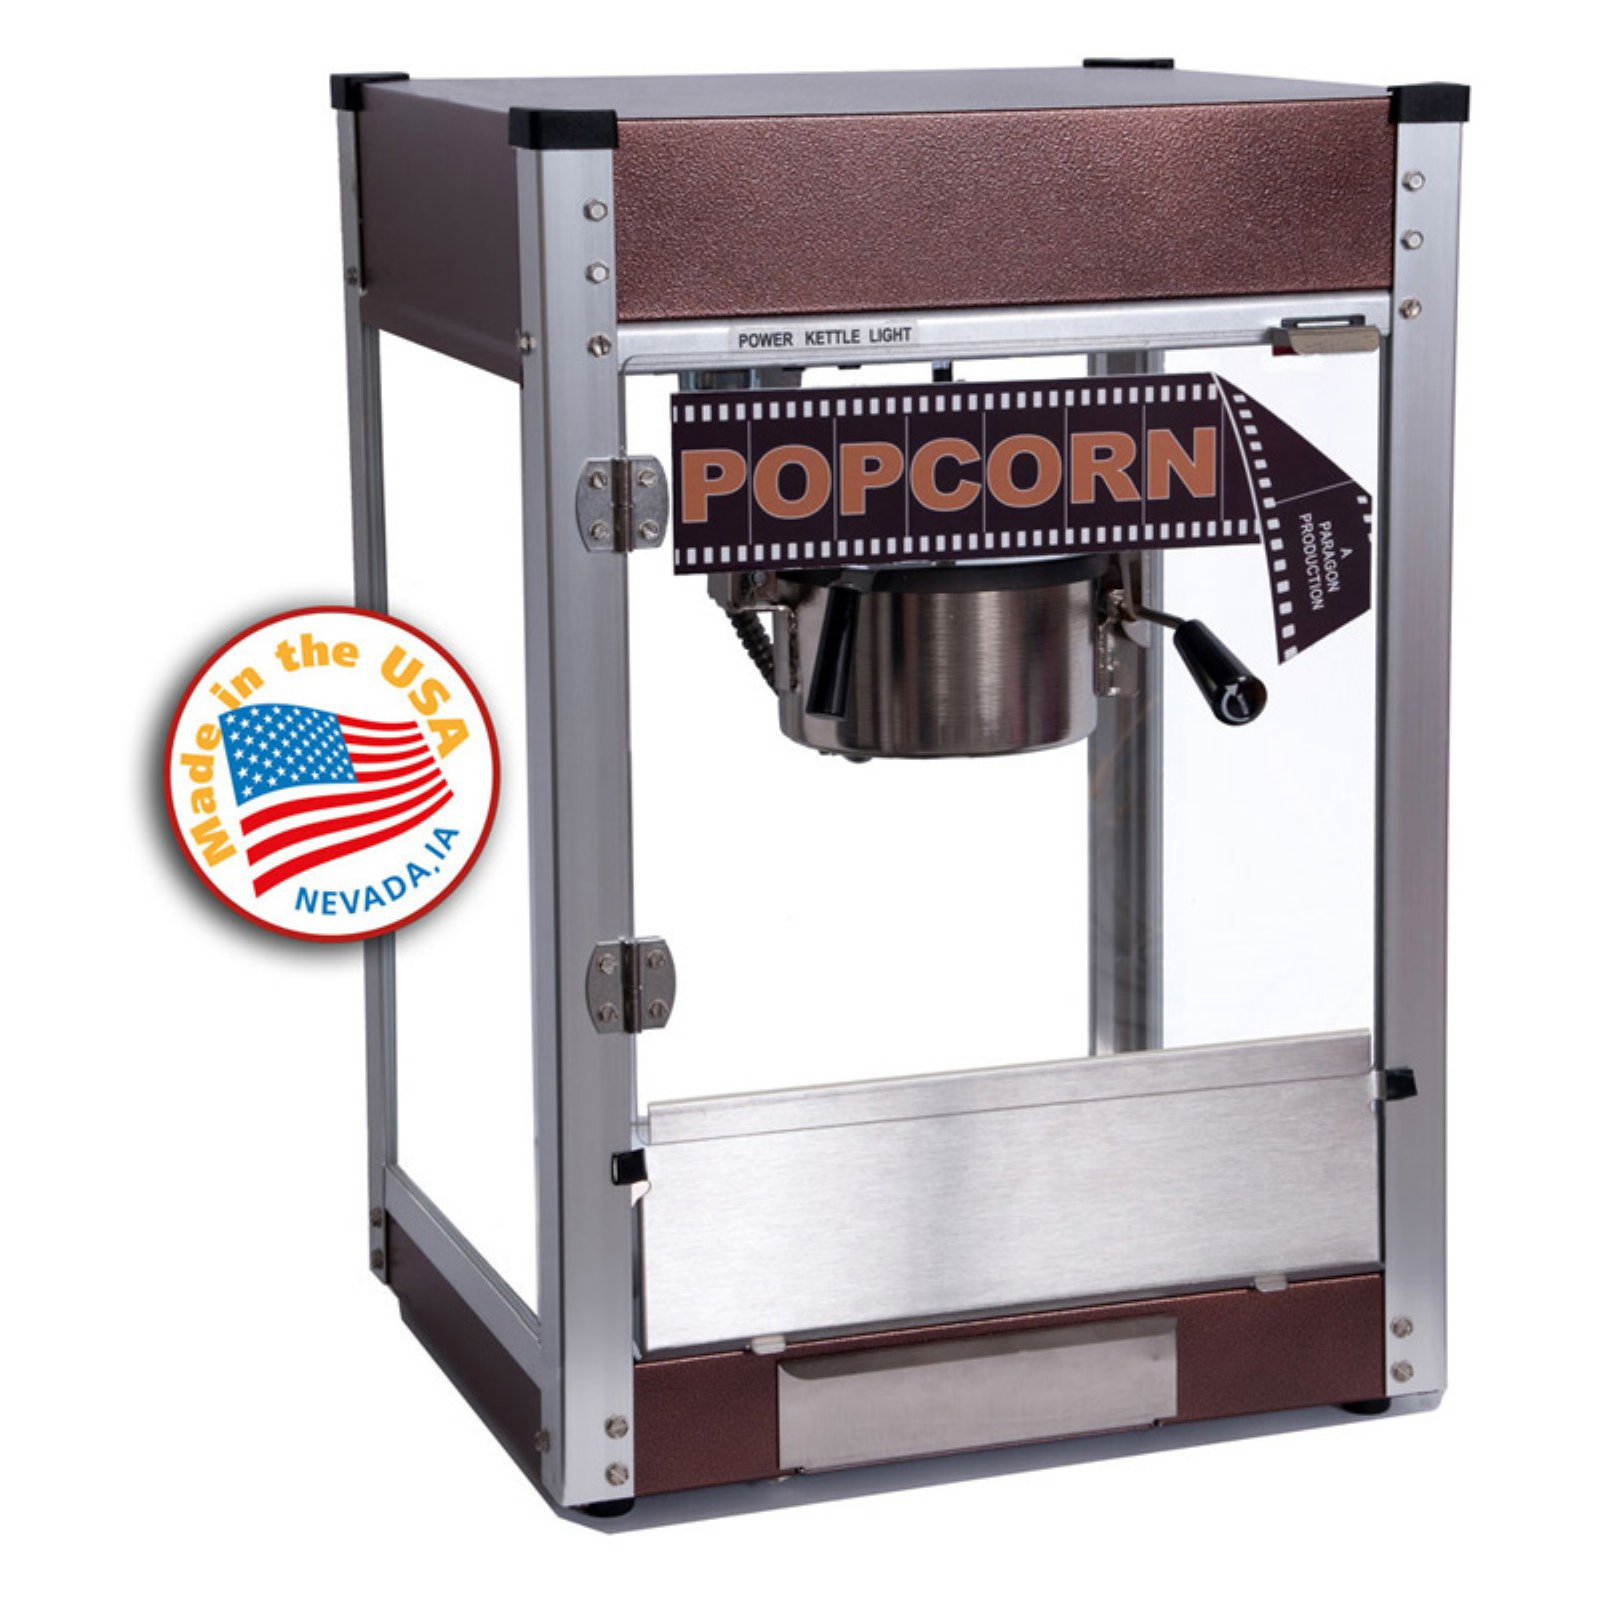 Paragon Cineplex Copper 4 oz. Popcorn Machine